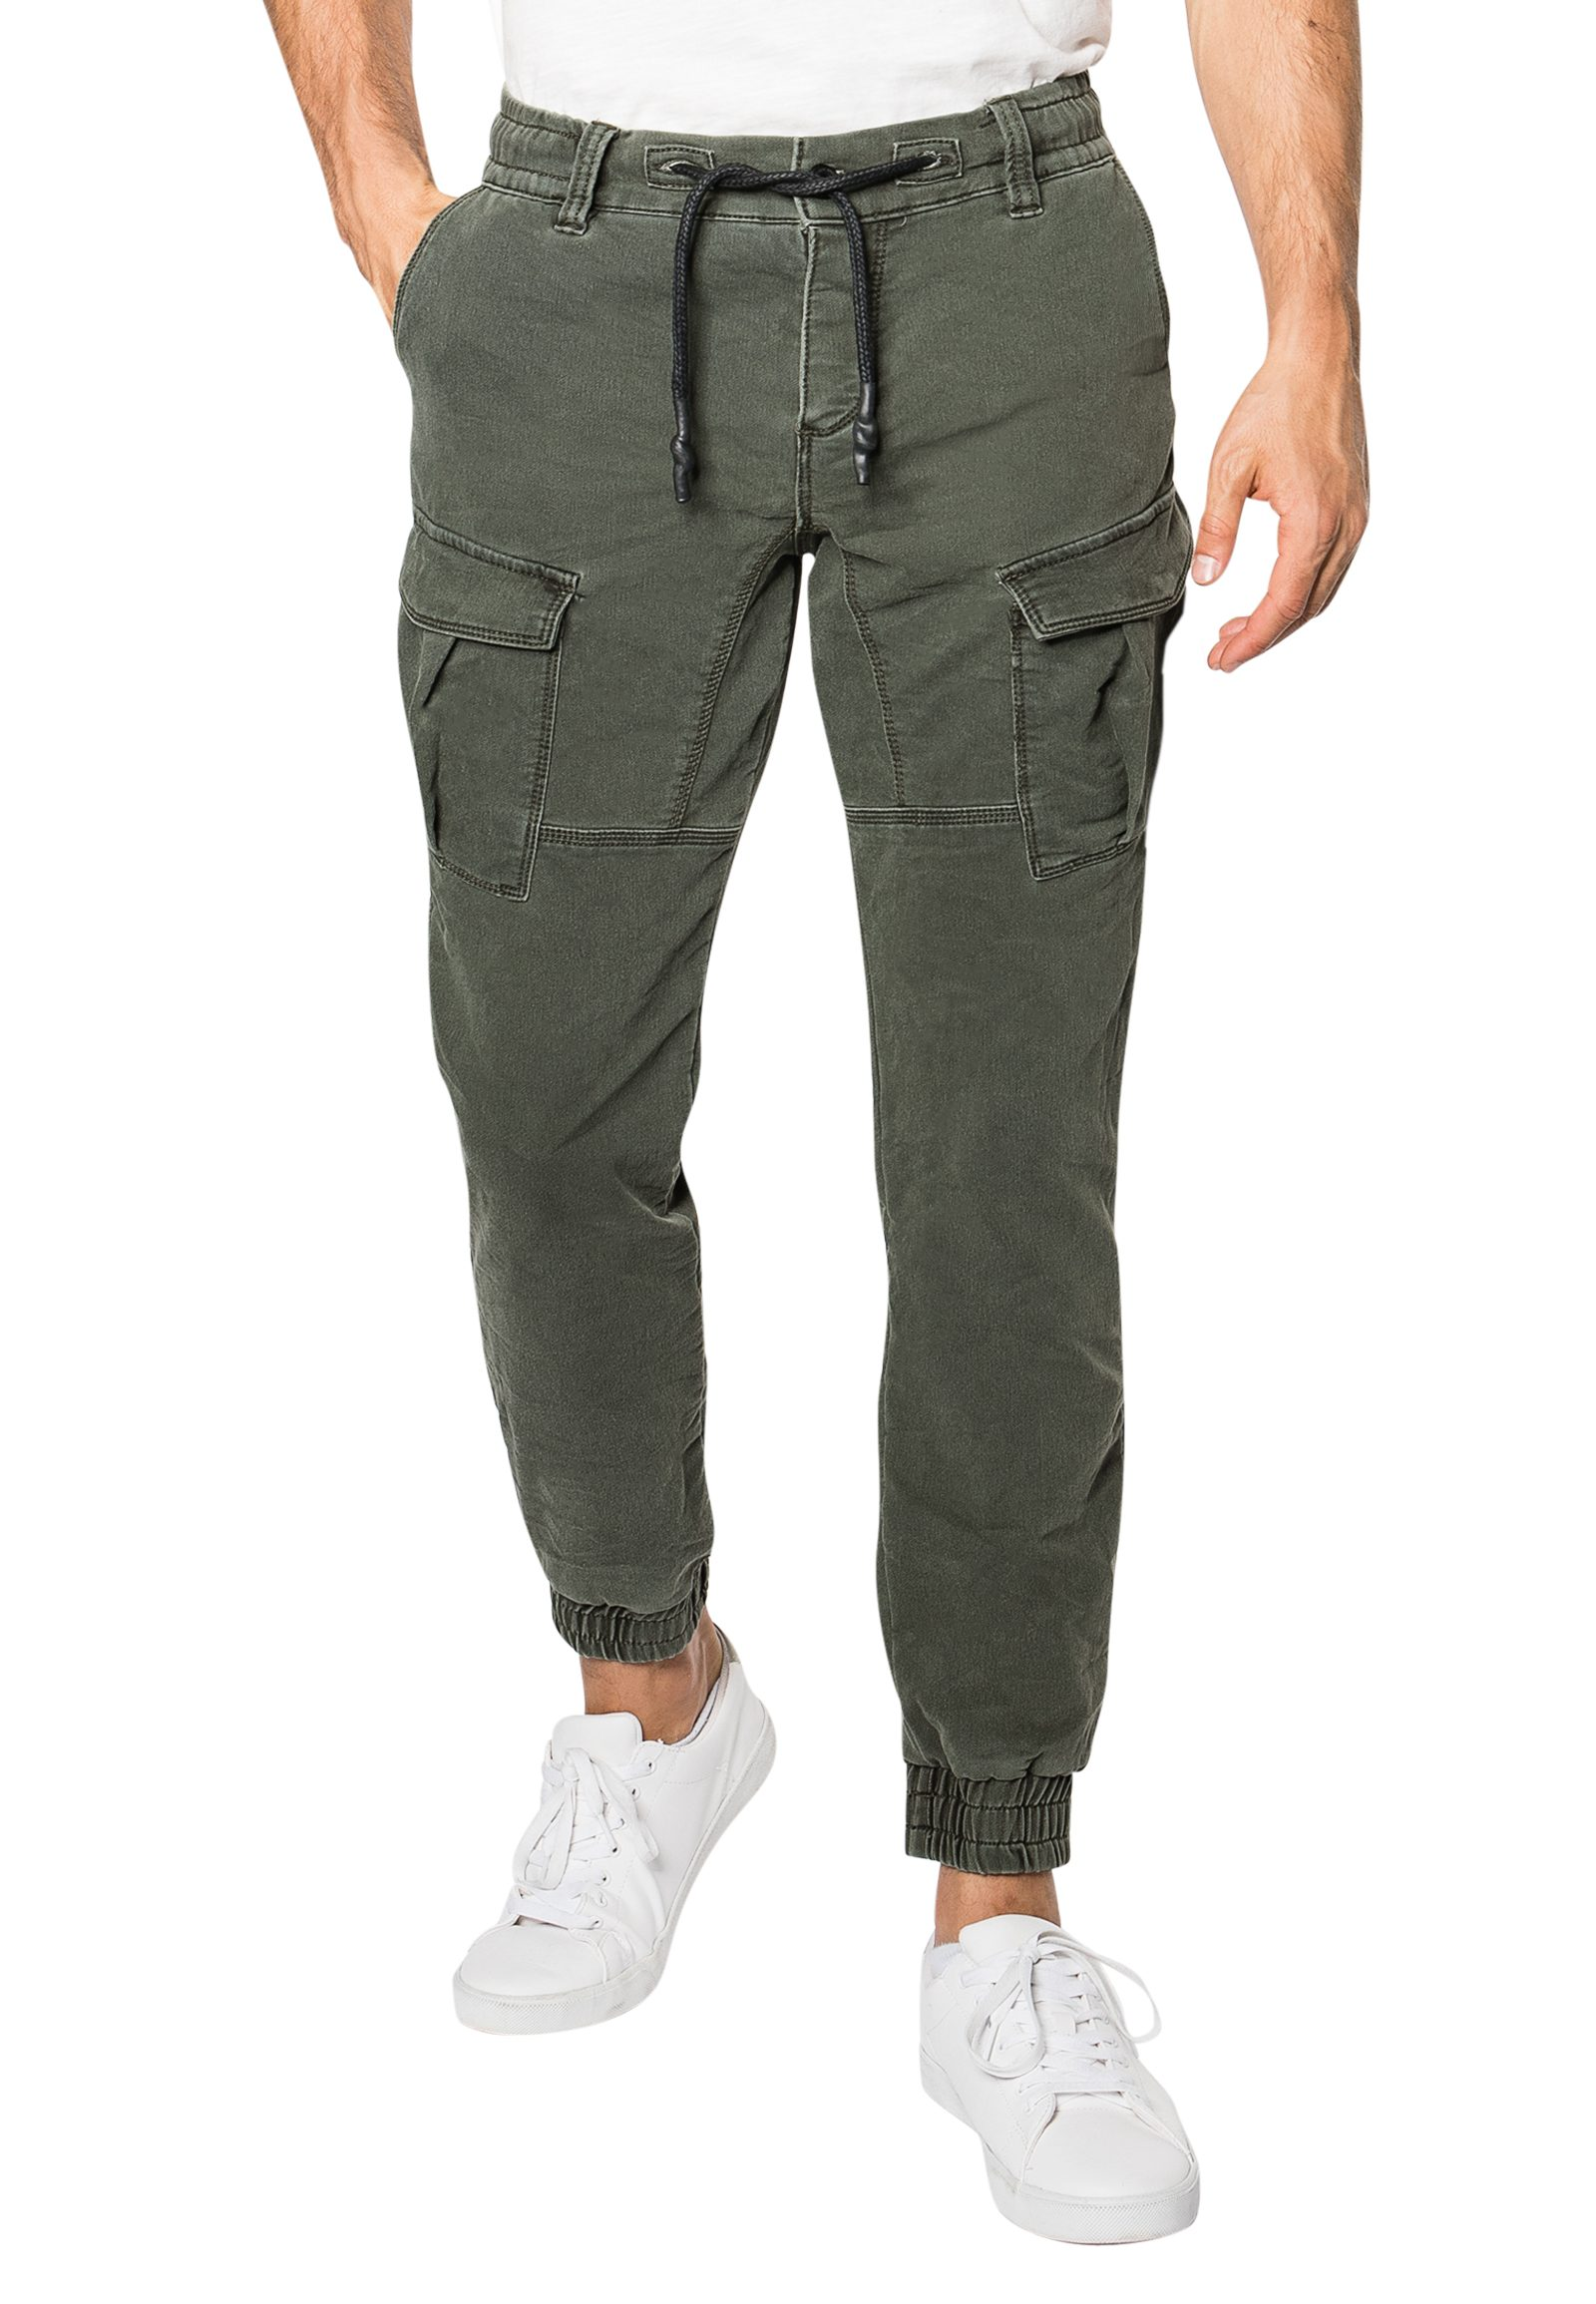 Vorschau: Cargo Sweat Hose in Denim-Optik